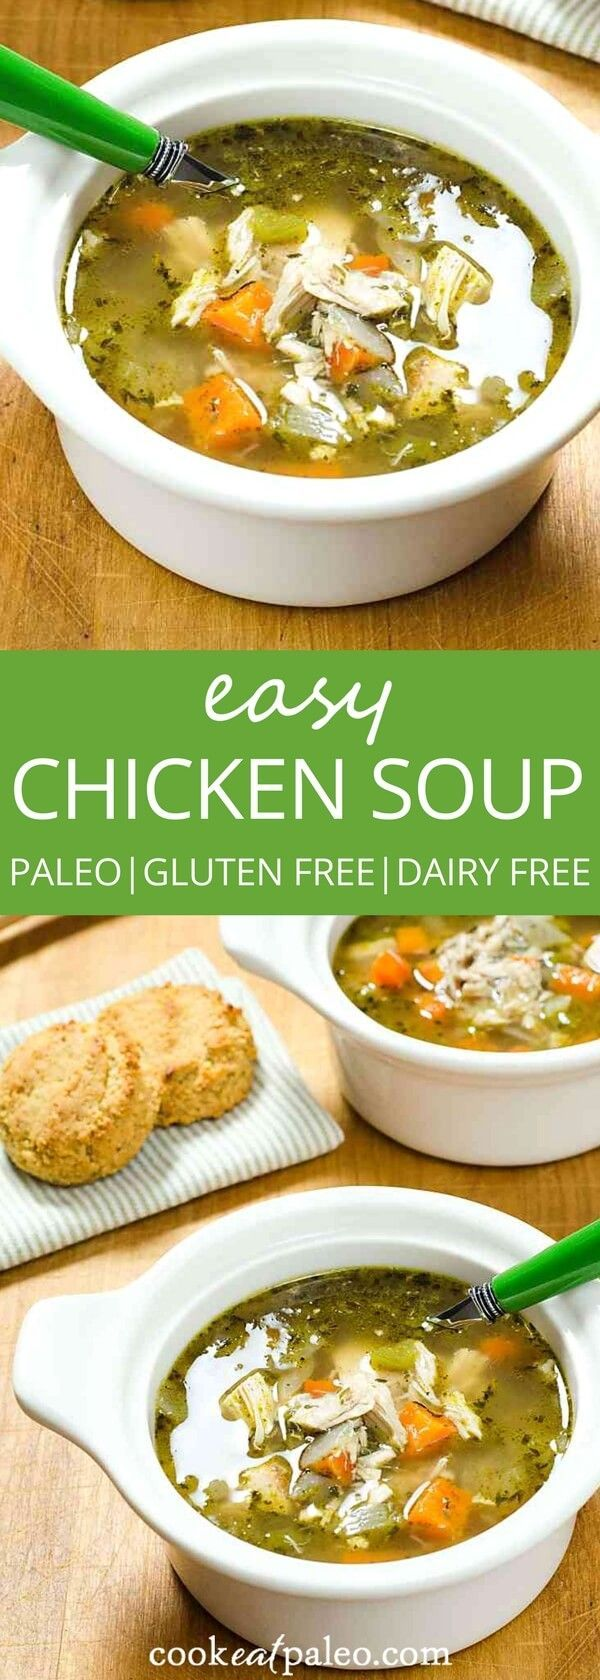 Easy chicken soup recipe made with rotisserie chicken. A great quick alternative to slow cooked chicken soup. Gluten free, dairy free, paleo... via @cookeatpaleo